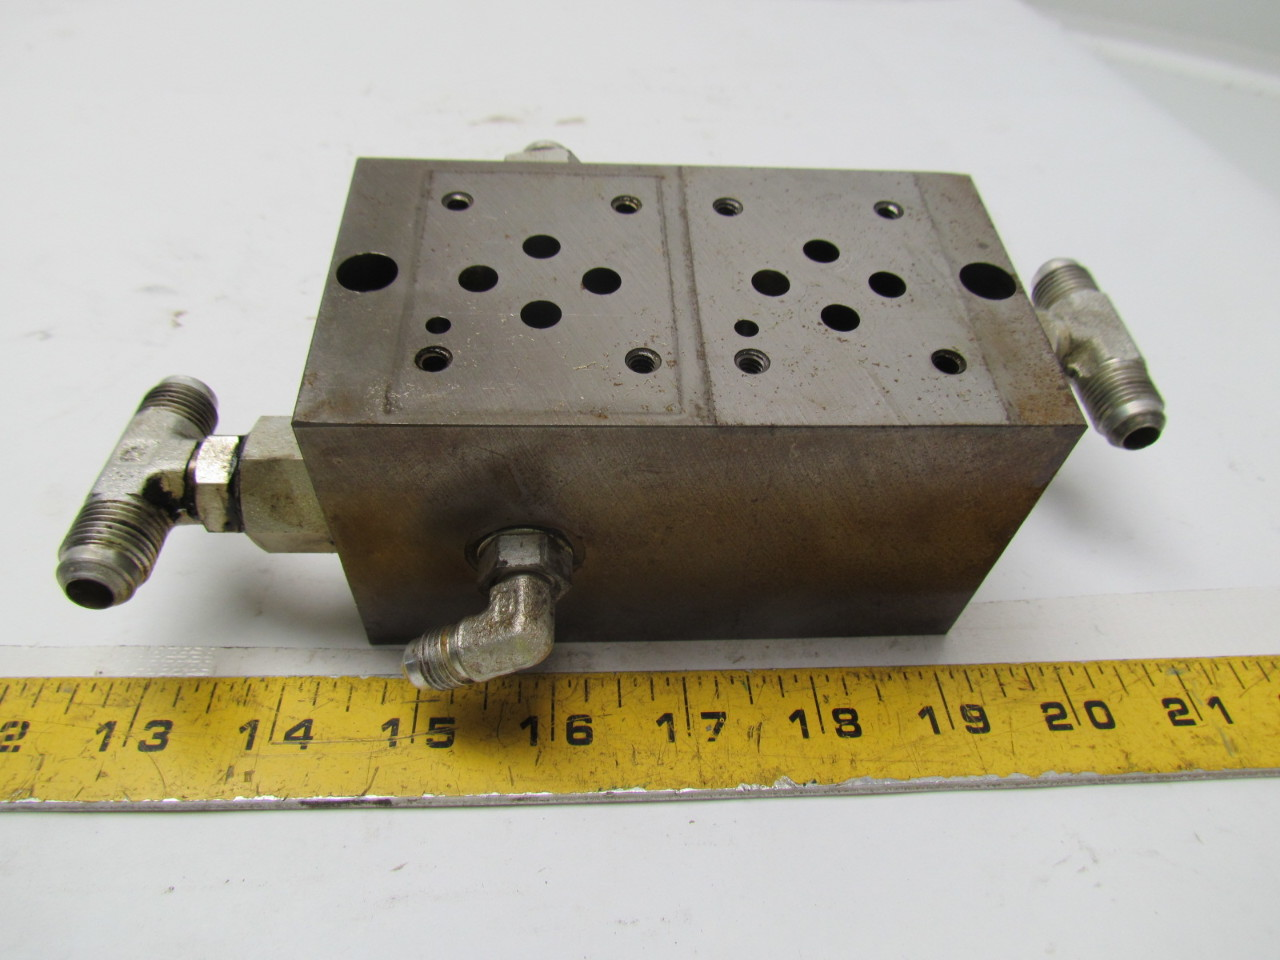 Vickers DGMS-3-2E-10-S 2 station hydraulic subplate port size SAE 3/4-16 UNF-2B